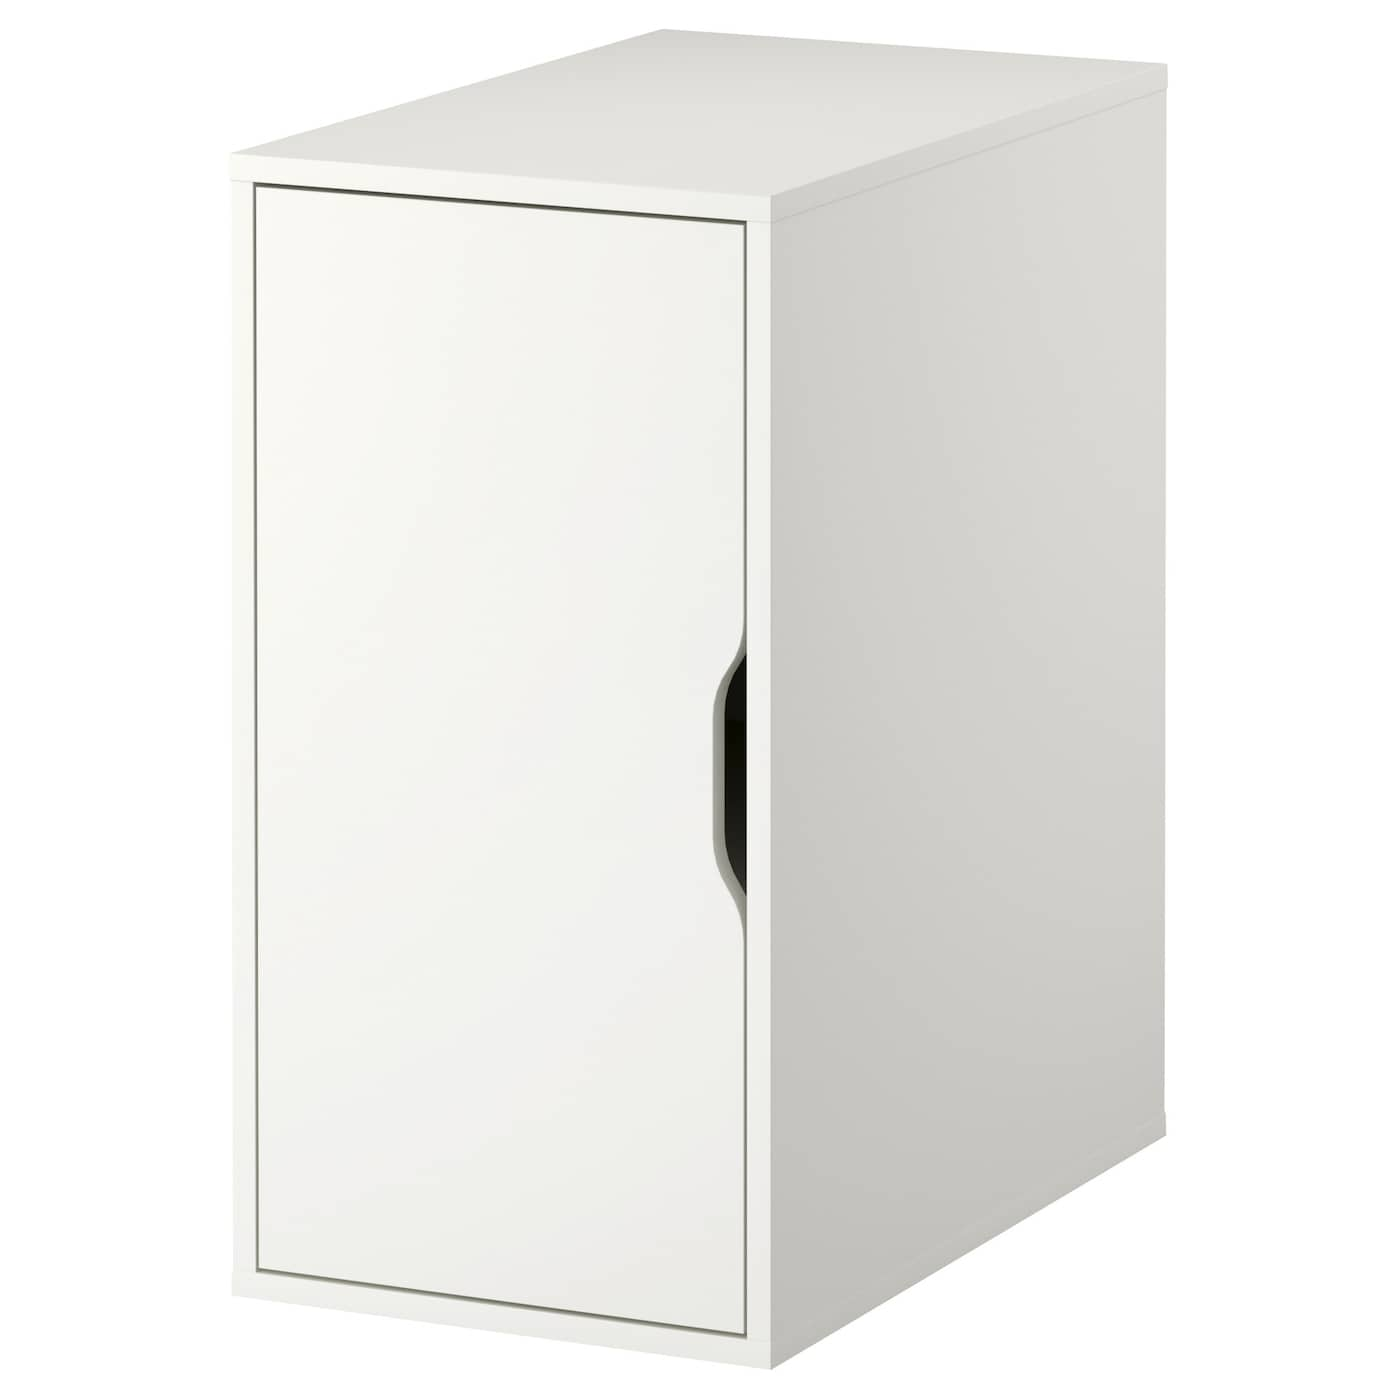 alex storage unit white 36x70 cm ikea